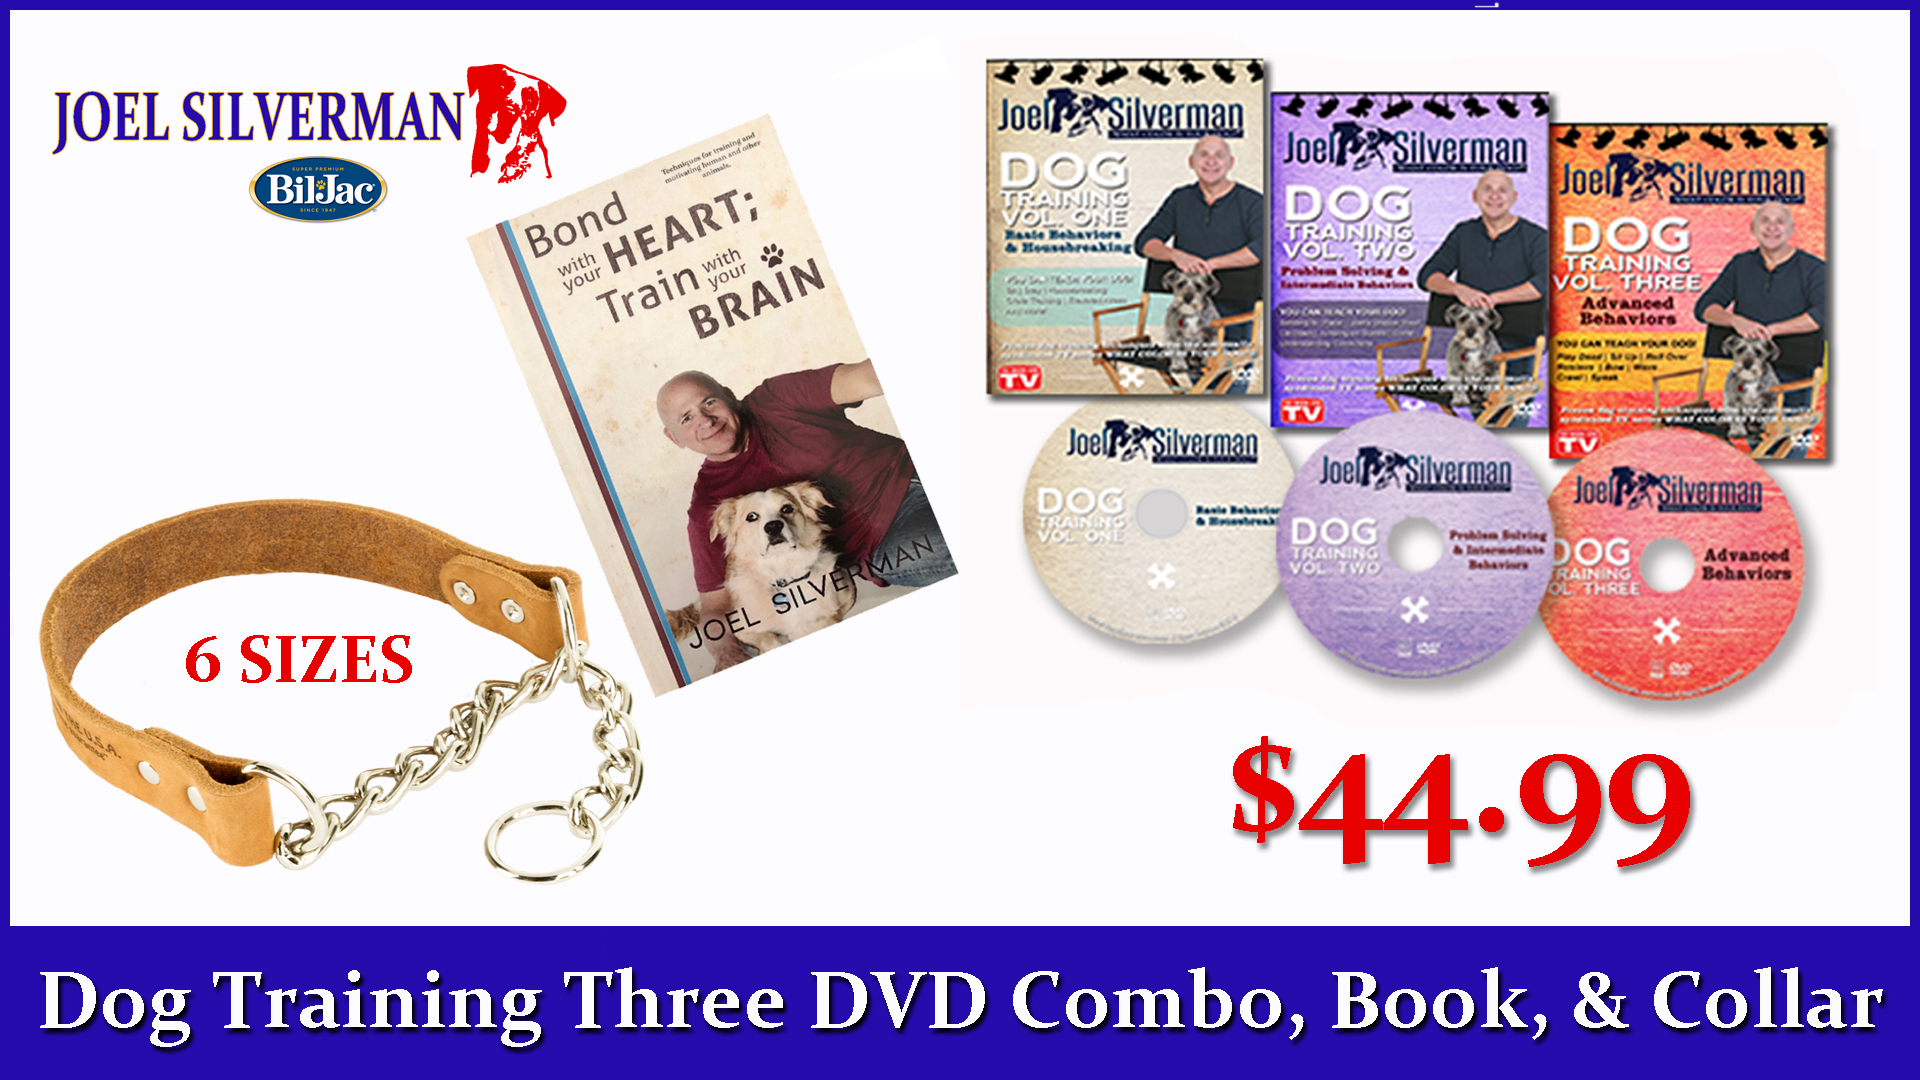 Joel Silverman's 3 DVD Set   Alternative Training Collar   Bond With Your Heart … Book